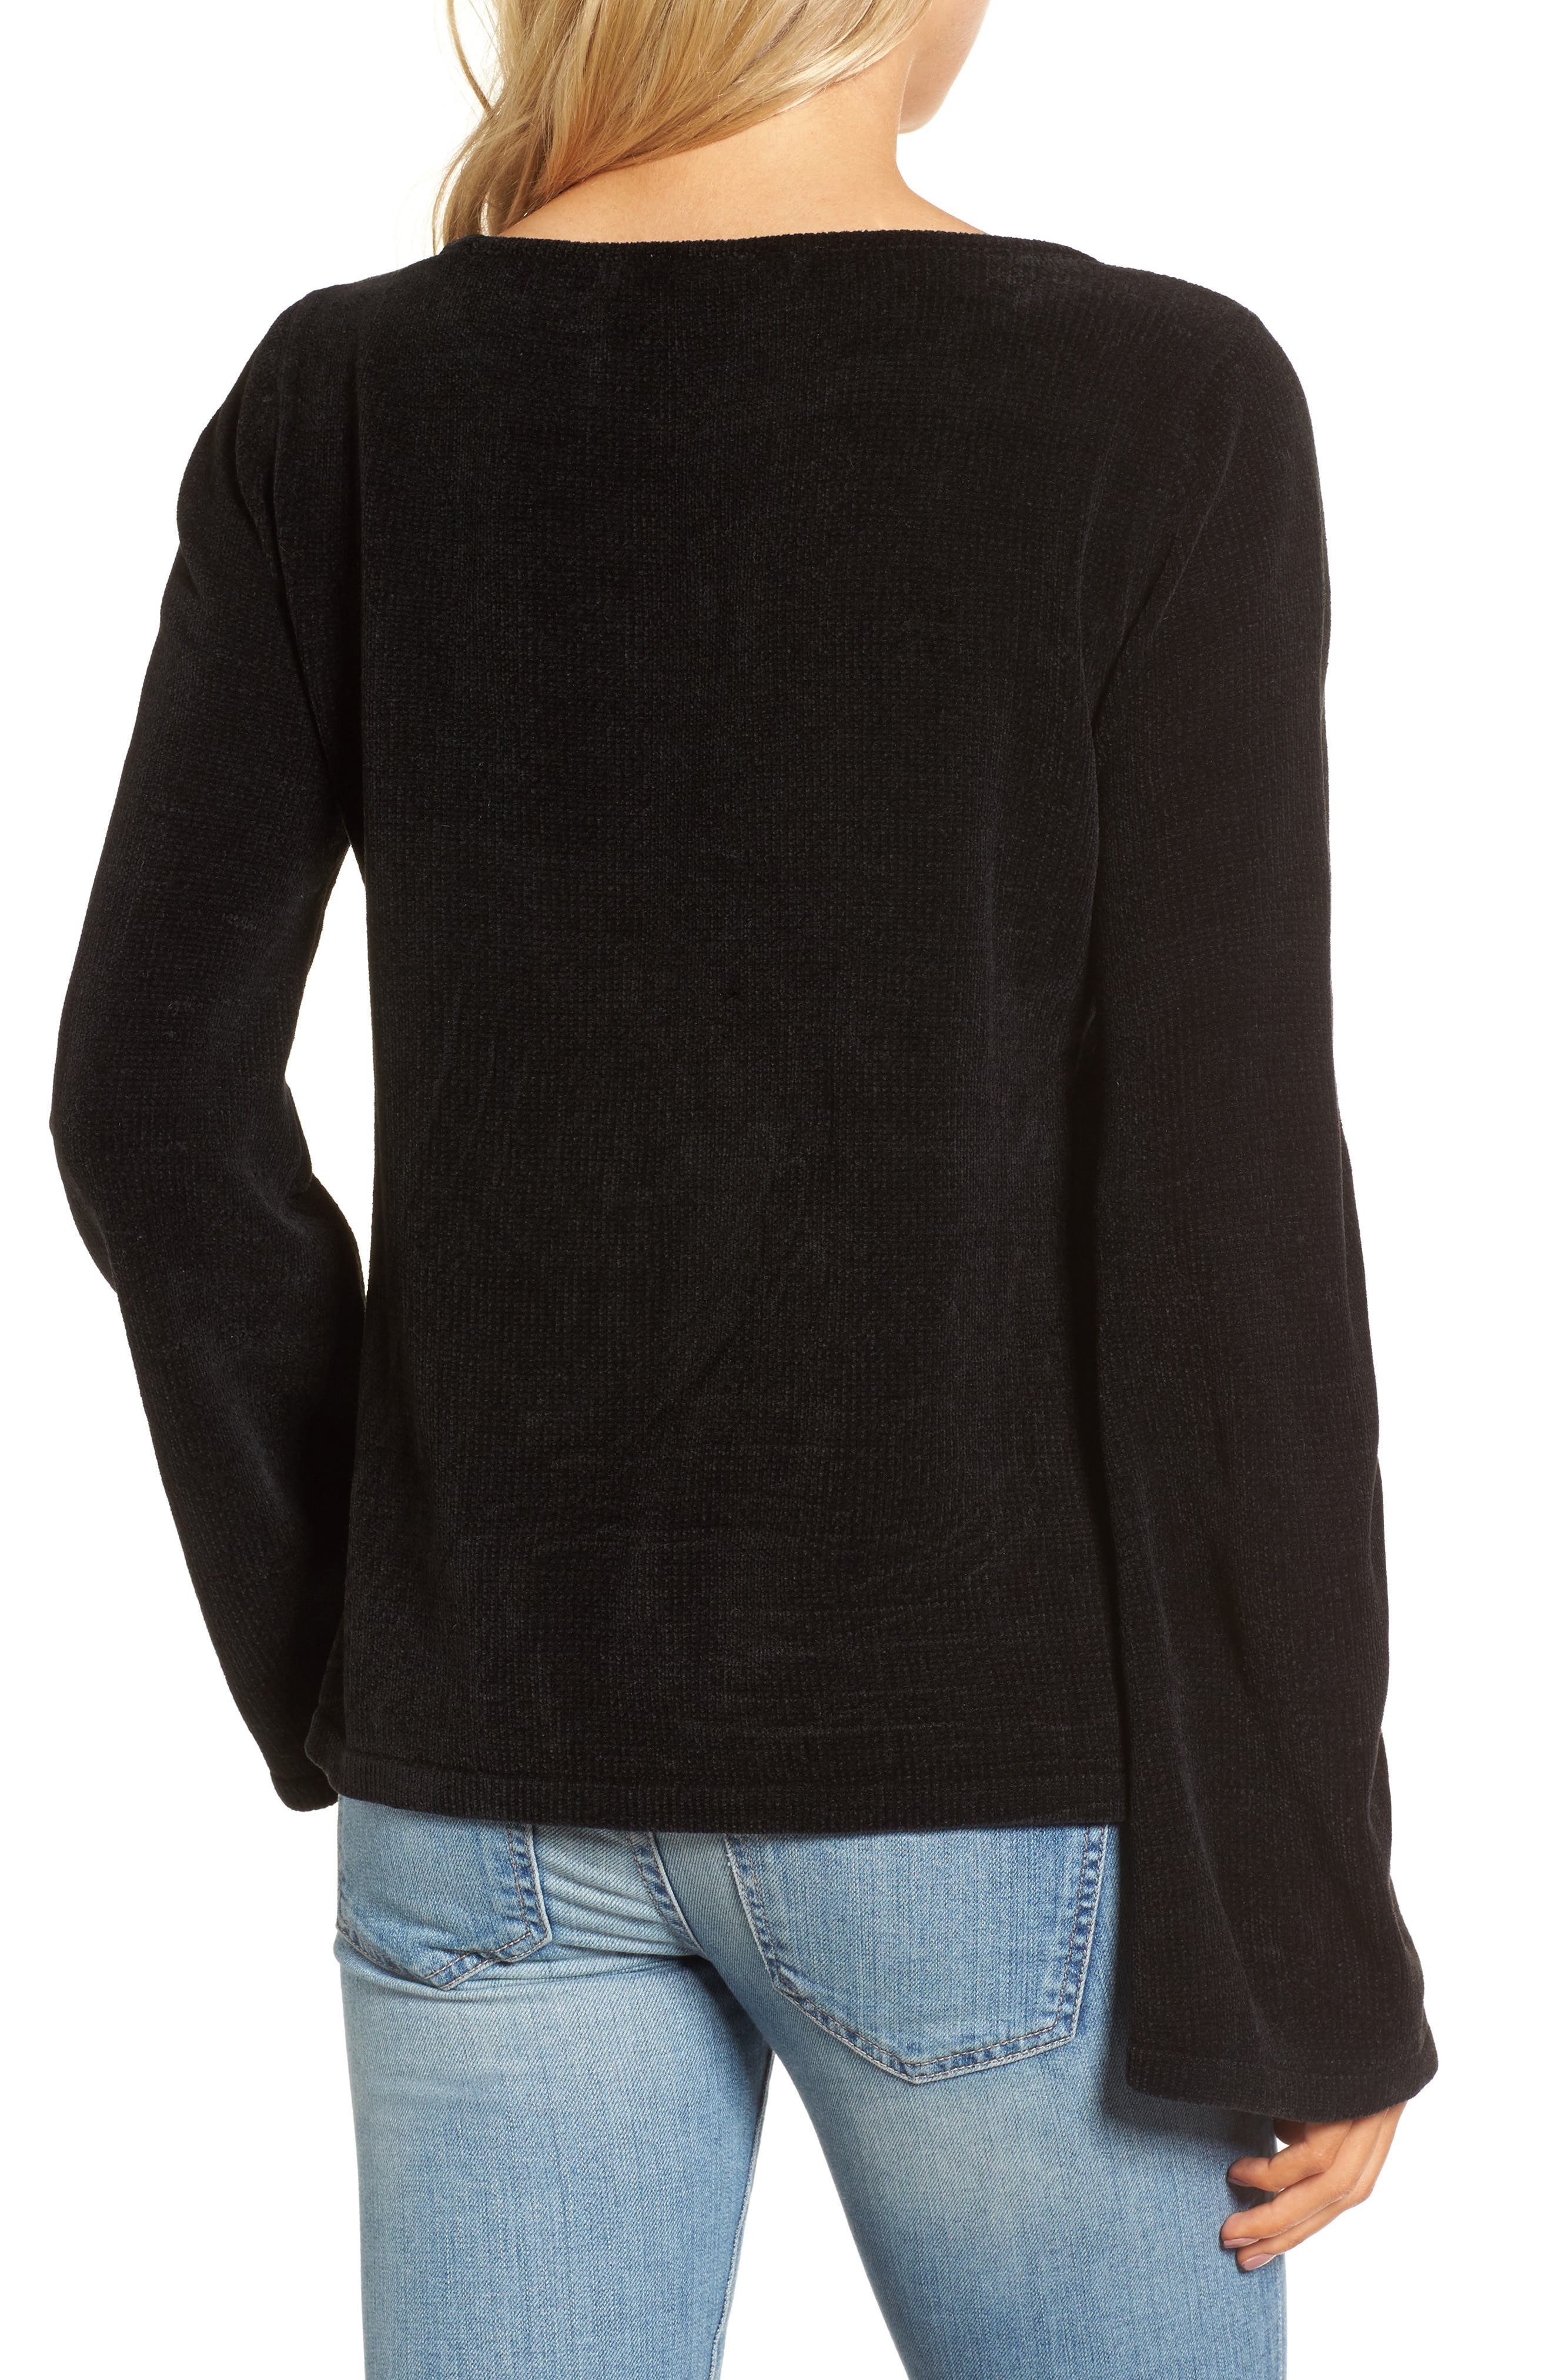 Ruthie Embroidered Sweater,                             Alternate thumbnail 2, color,                             001